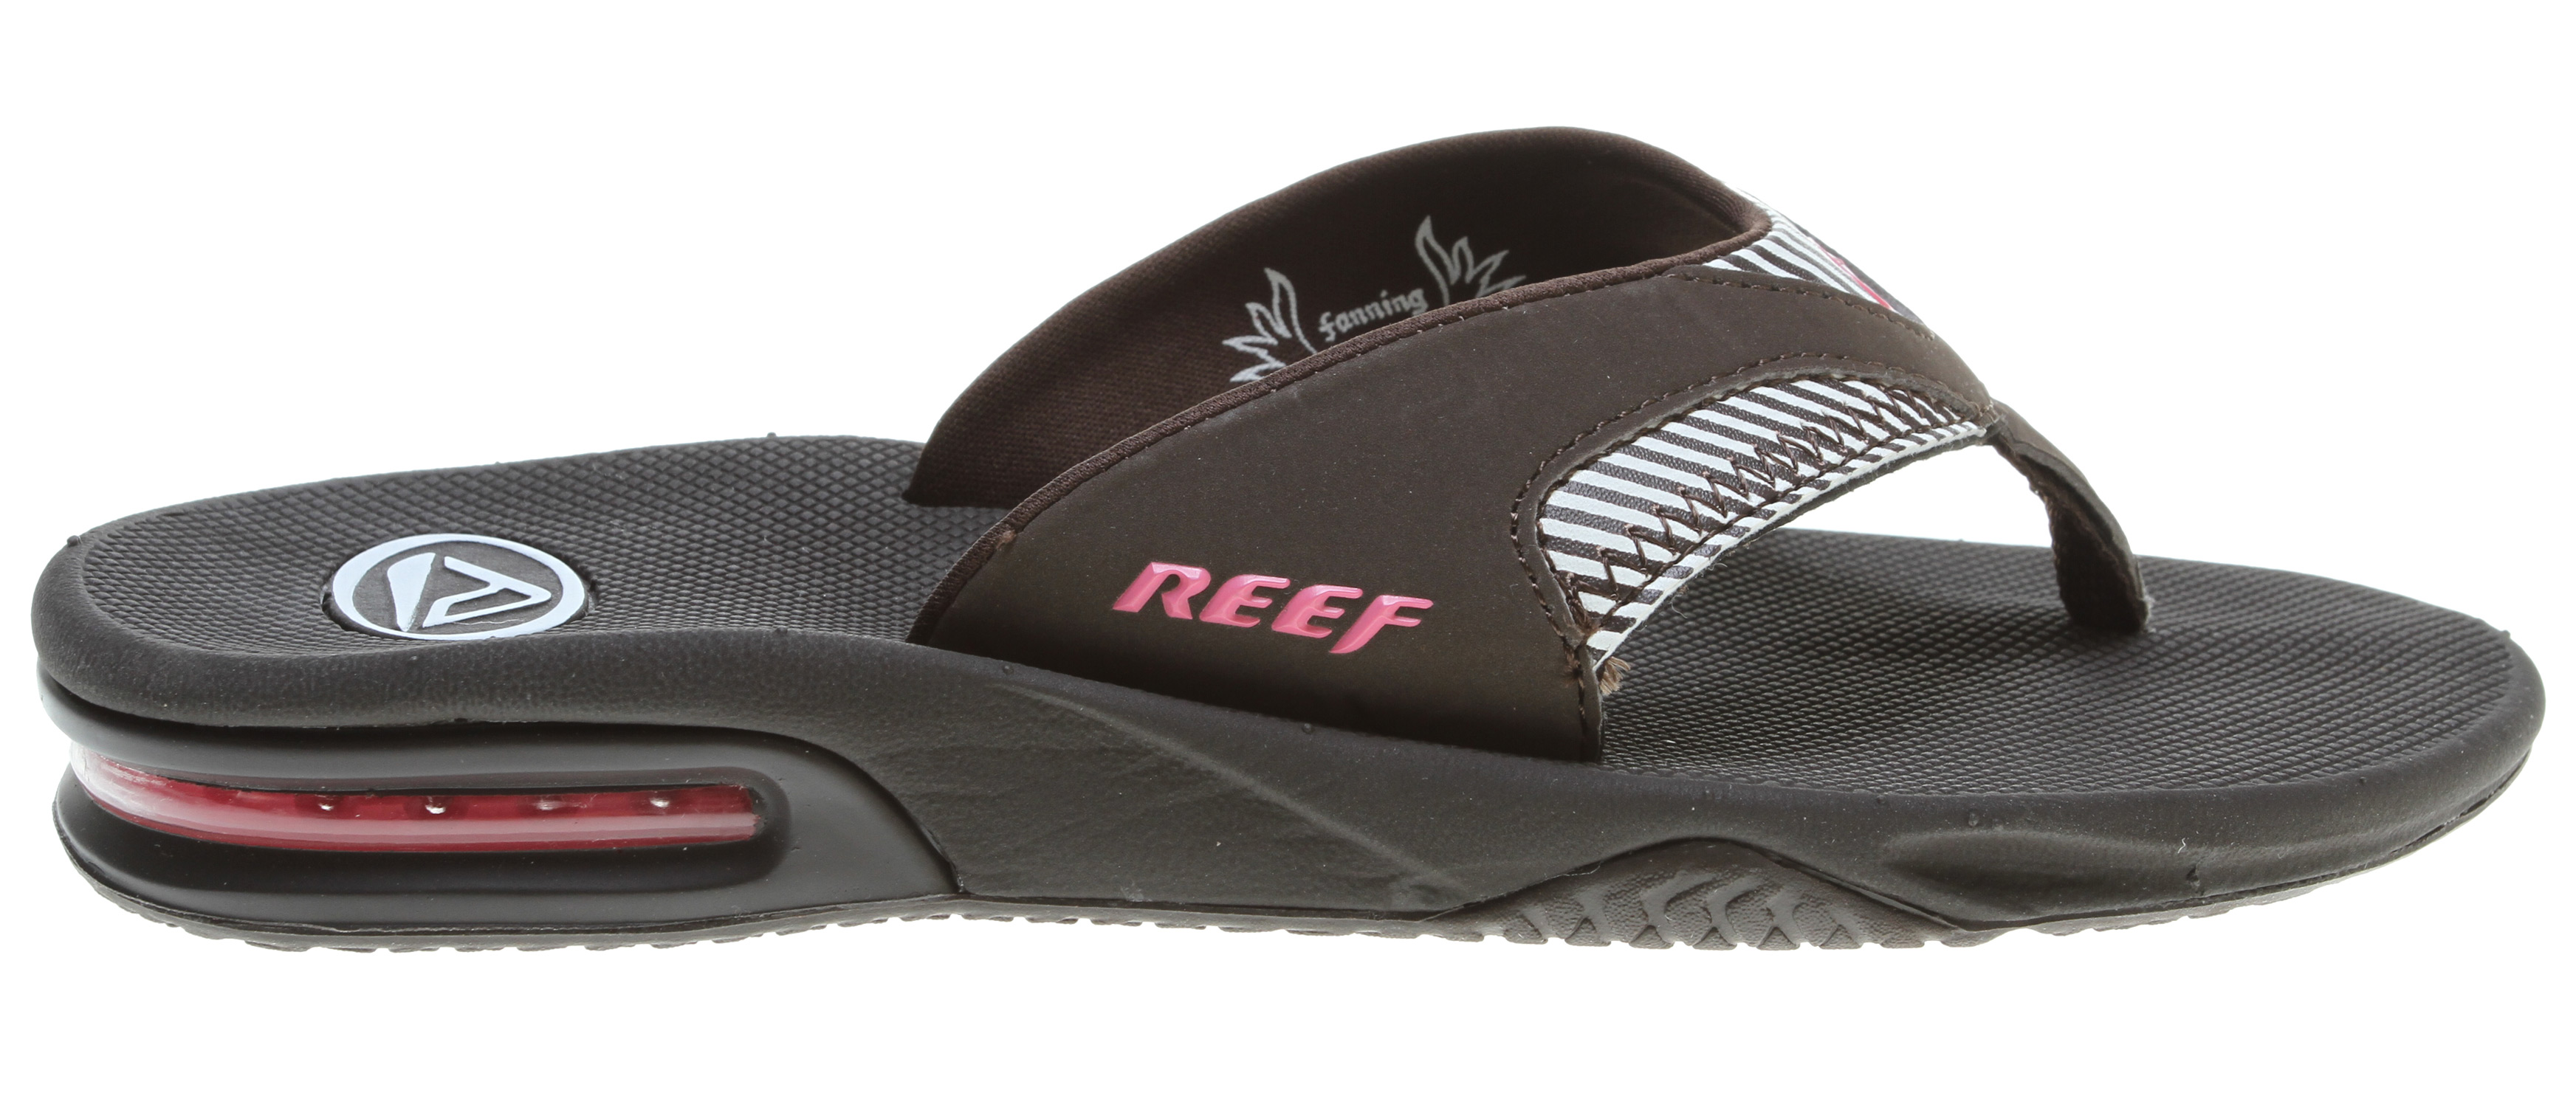 Surf Key Features of the Reef Fanning Sandals: Mick Fanning's signature sandal Water-friendly synthetic nubuck upper Contoured EVA footbed with anatomical arch support Full 360 degree heel airbag enclosed in soft polyurethane Church key to open your soda bottle - $34.95